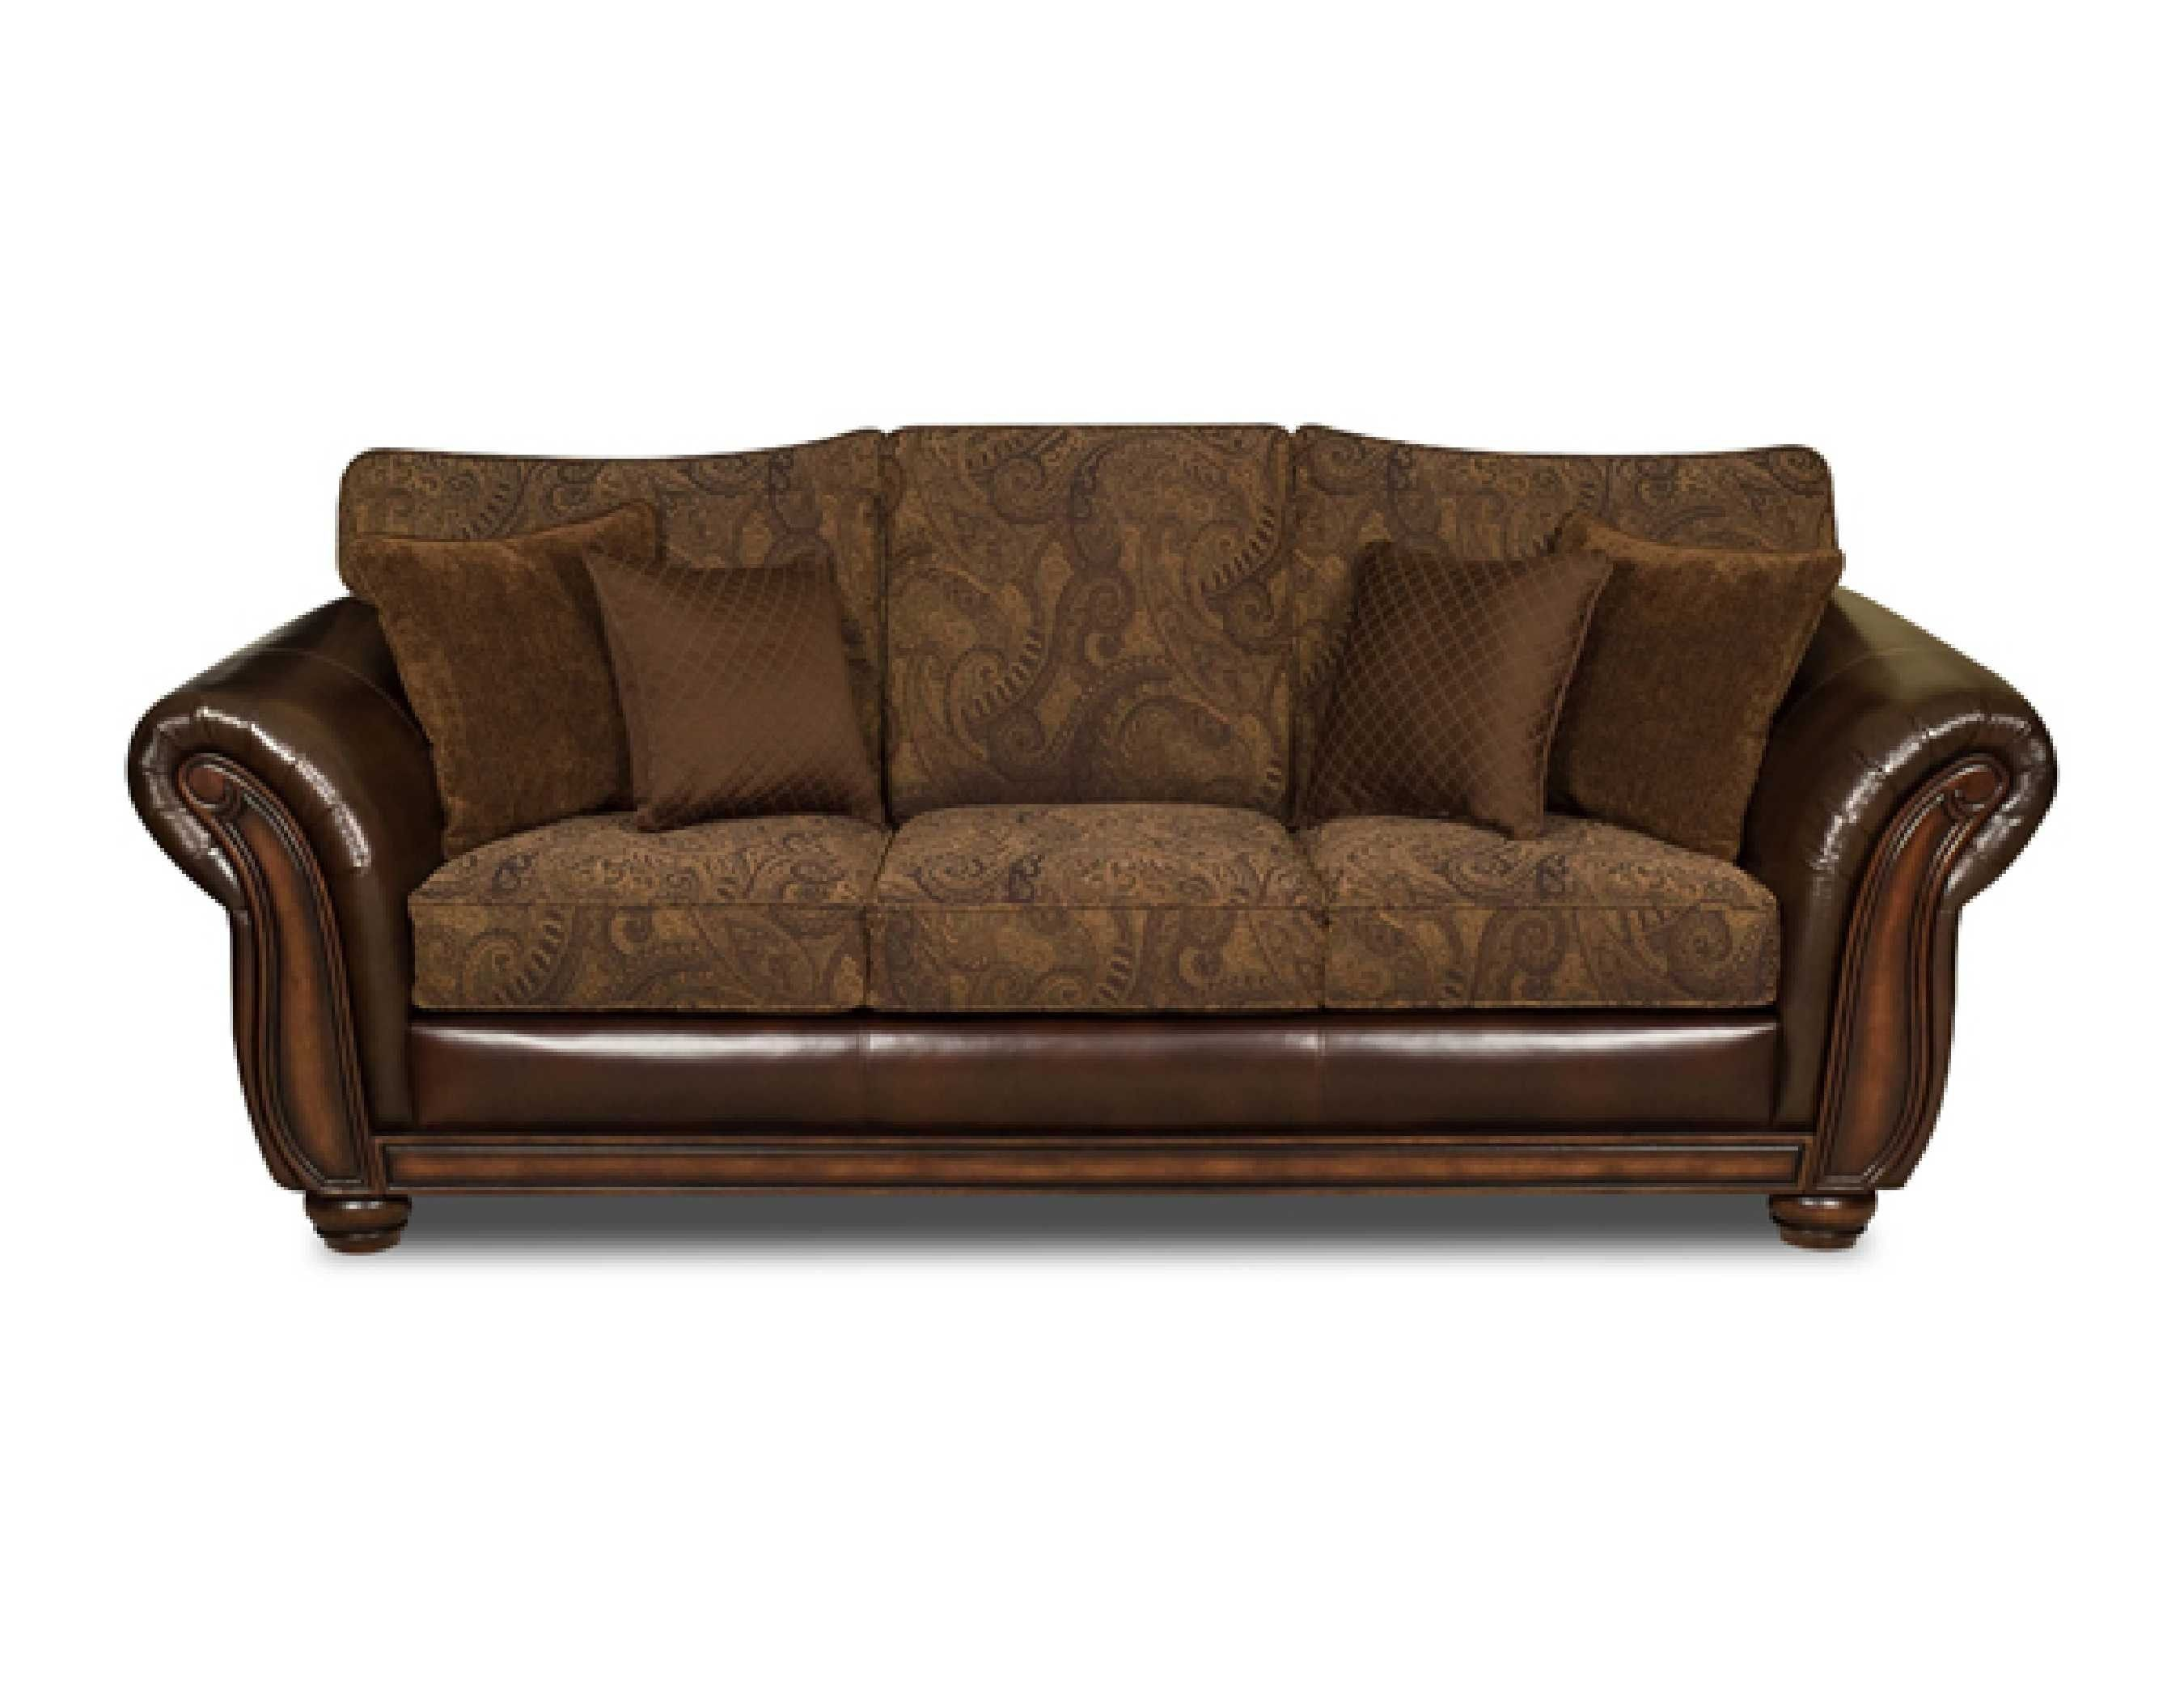 Best Family Room Furniture Images On Pinterest Couch Family - Leather sofa sleeper queen